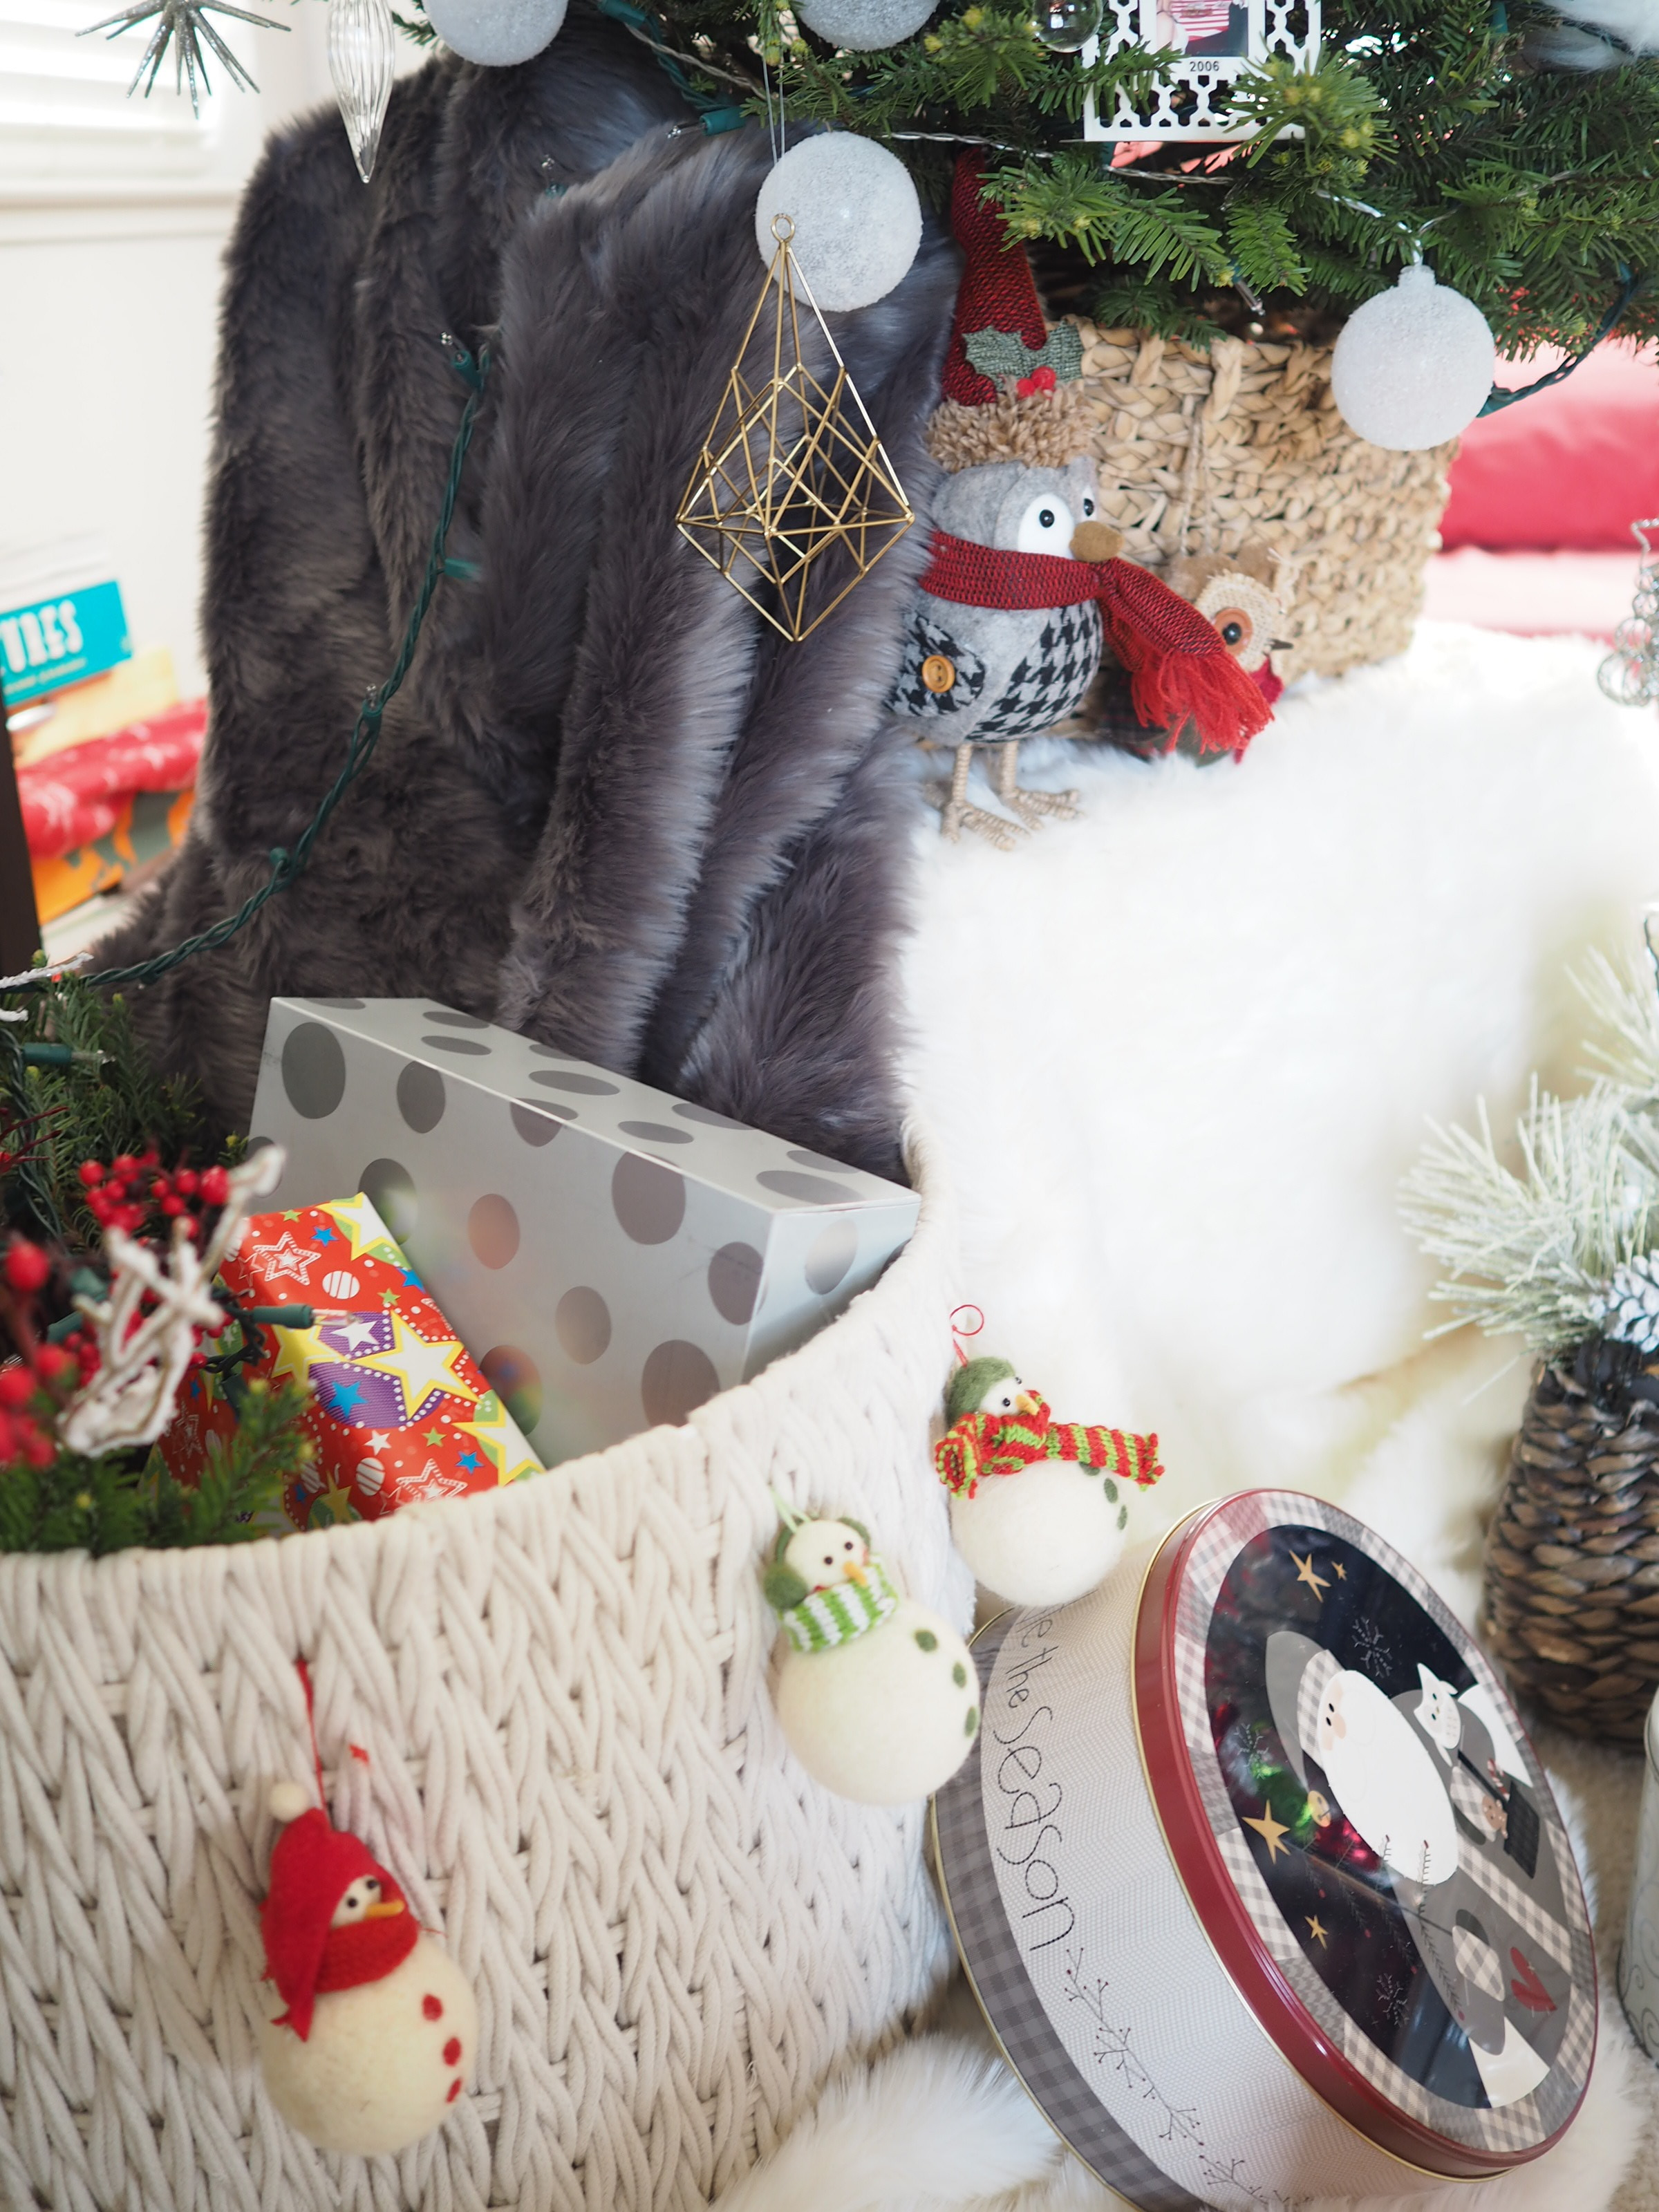 STORE GIFTS IN THE BASKETS